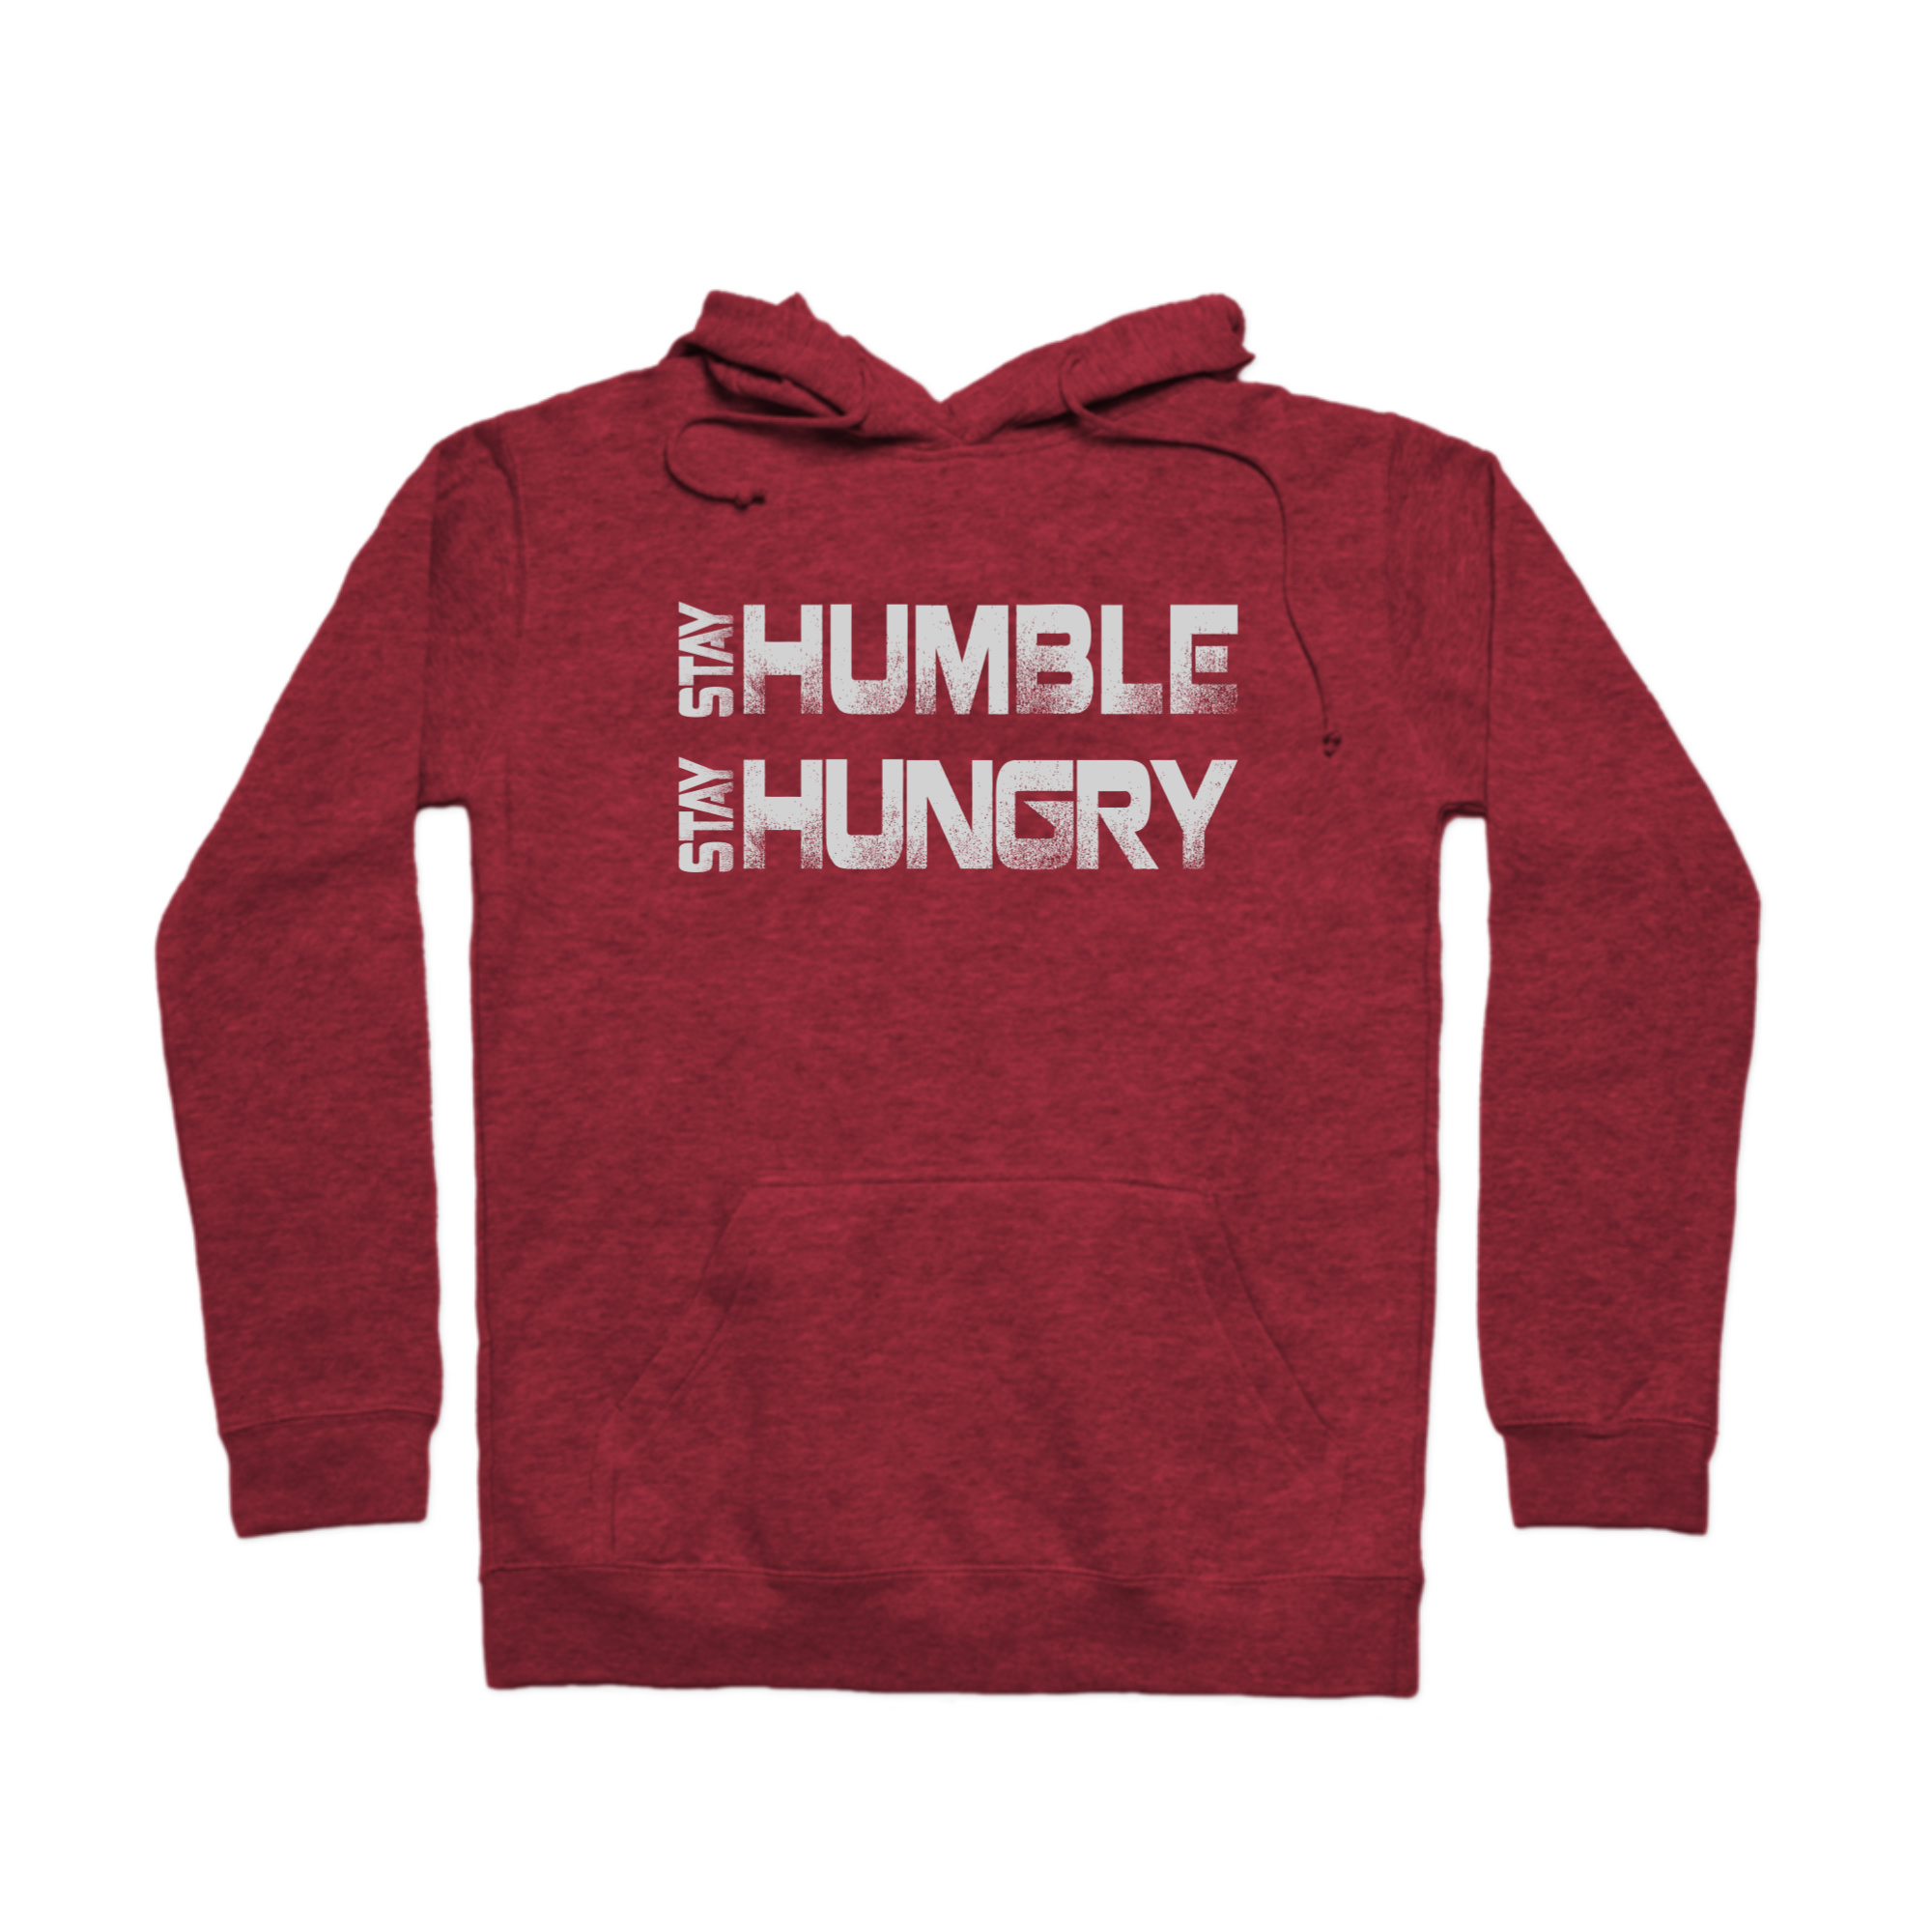 Stay Humble Stay Hungry Hoodie